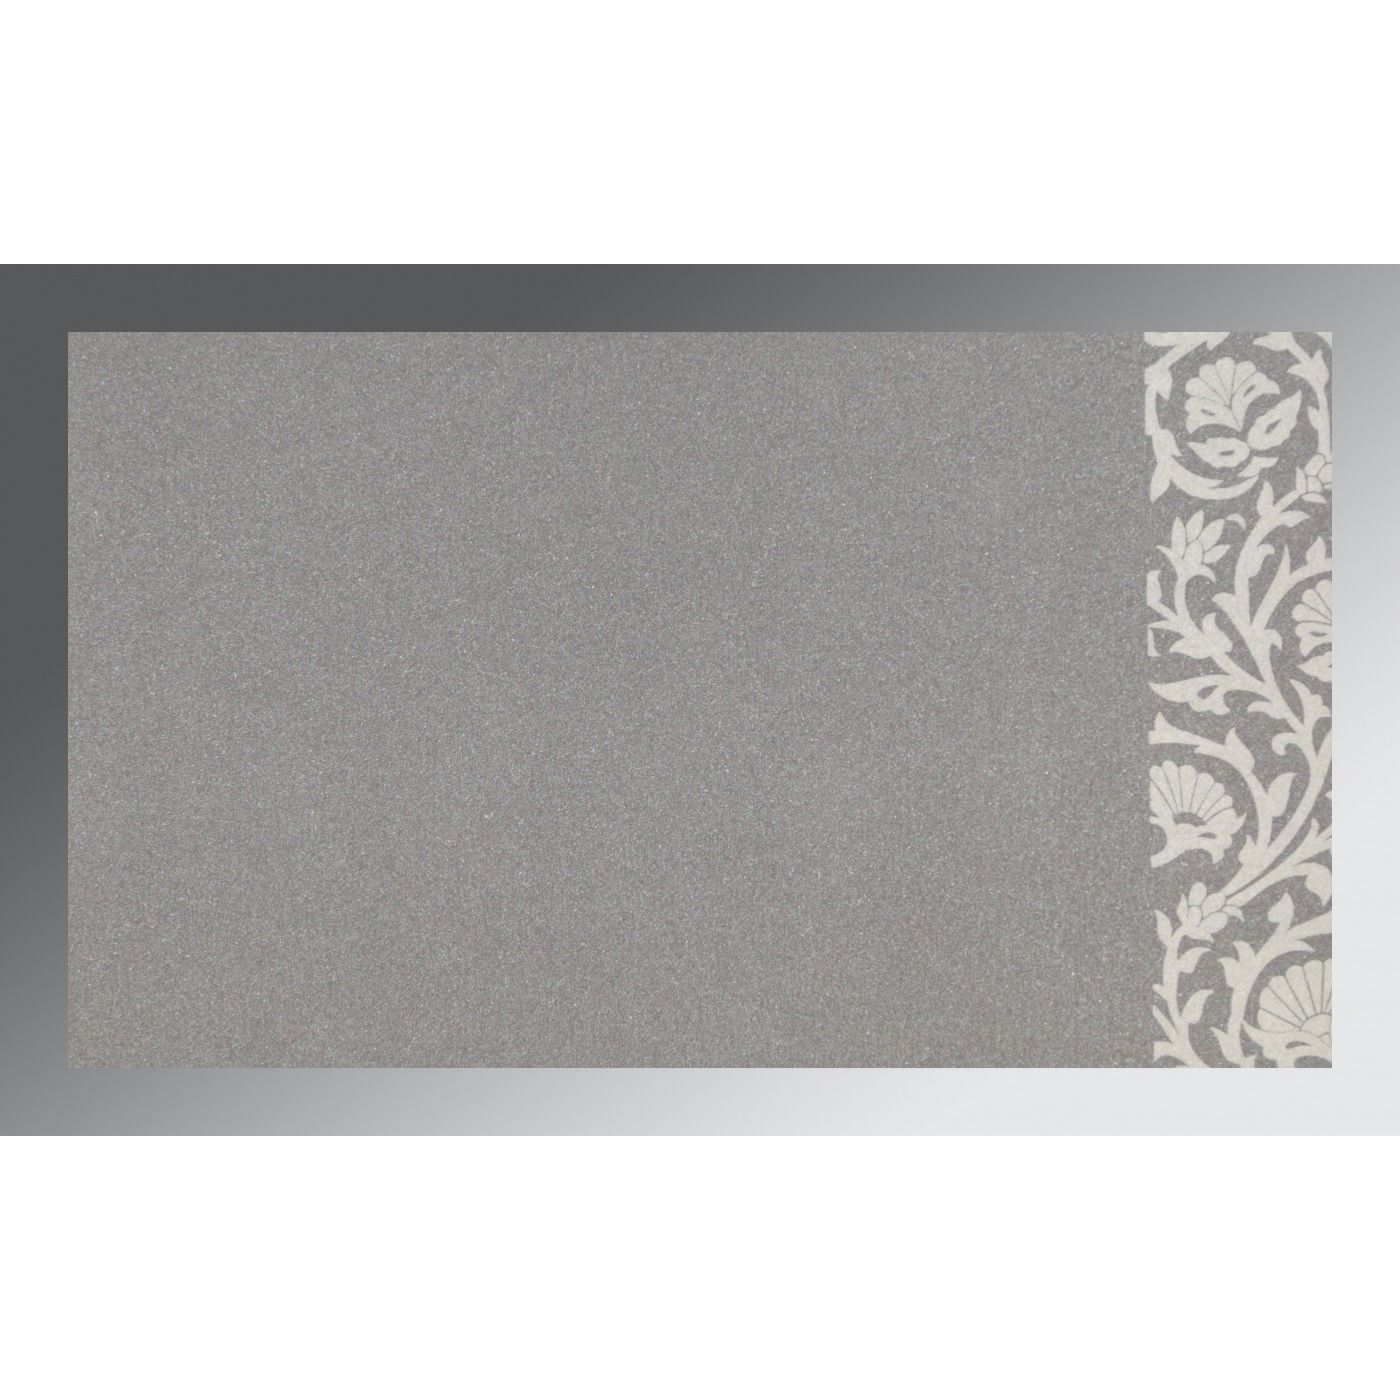 GREY SCREEN PRINTED WEDDING INVITATION : CW-1371 - IndianWeddingCards